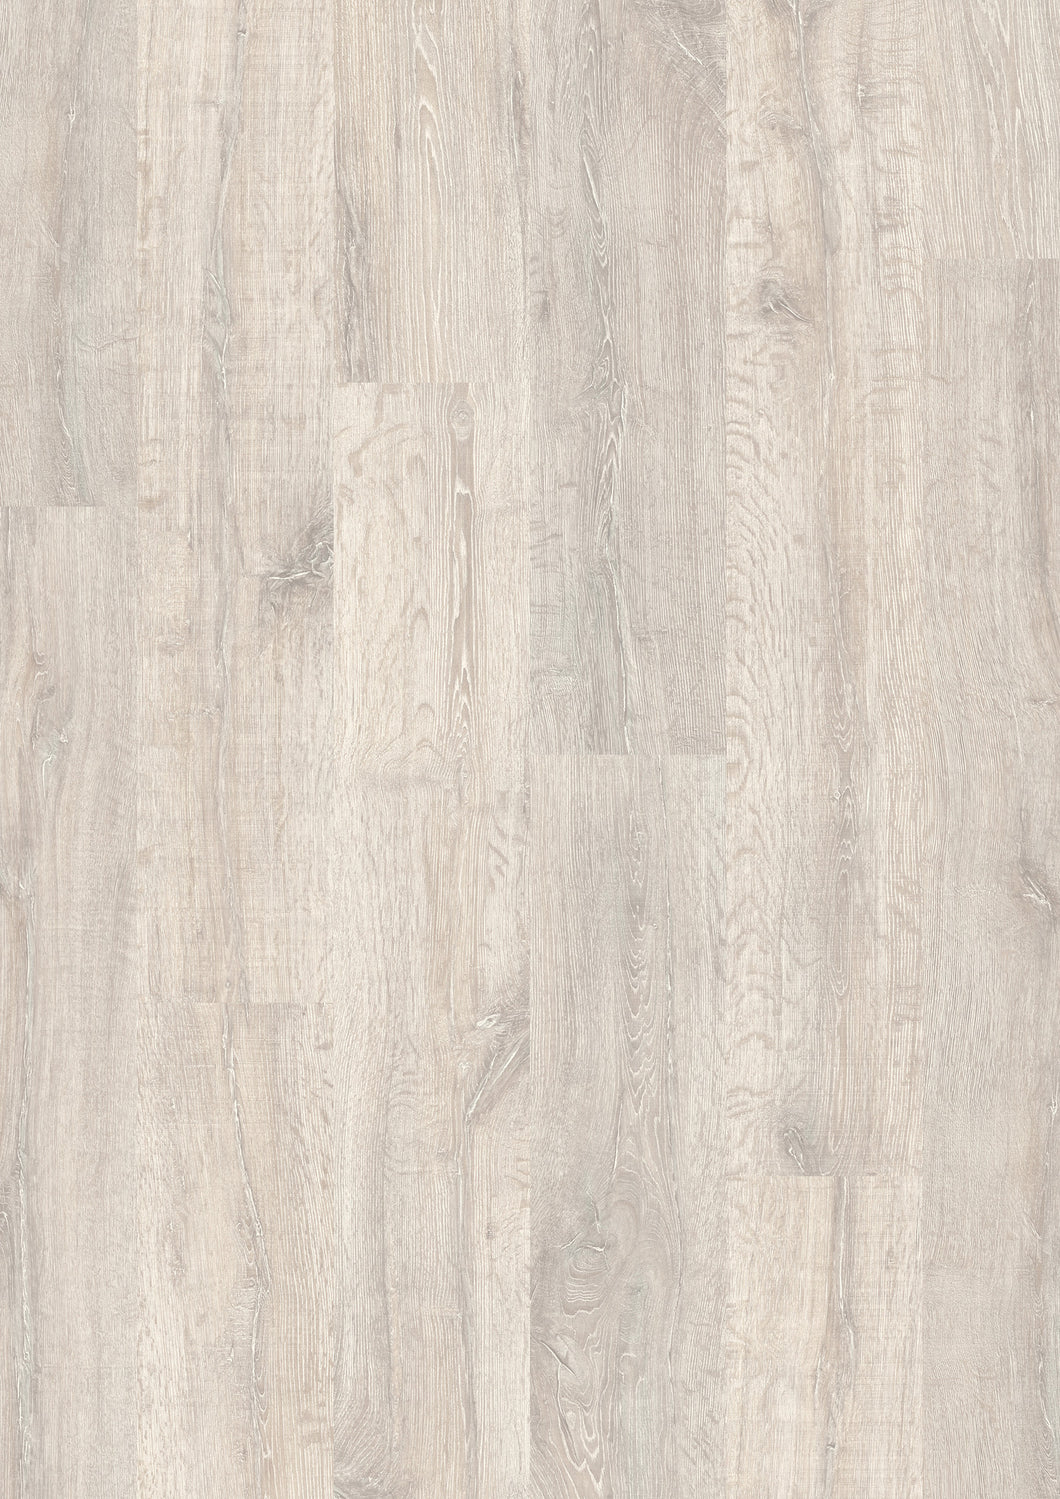 QuickStep Reclaimed White Patina Oak - Classic CL 1653